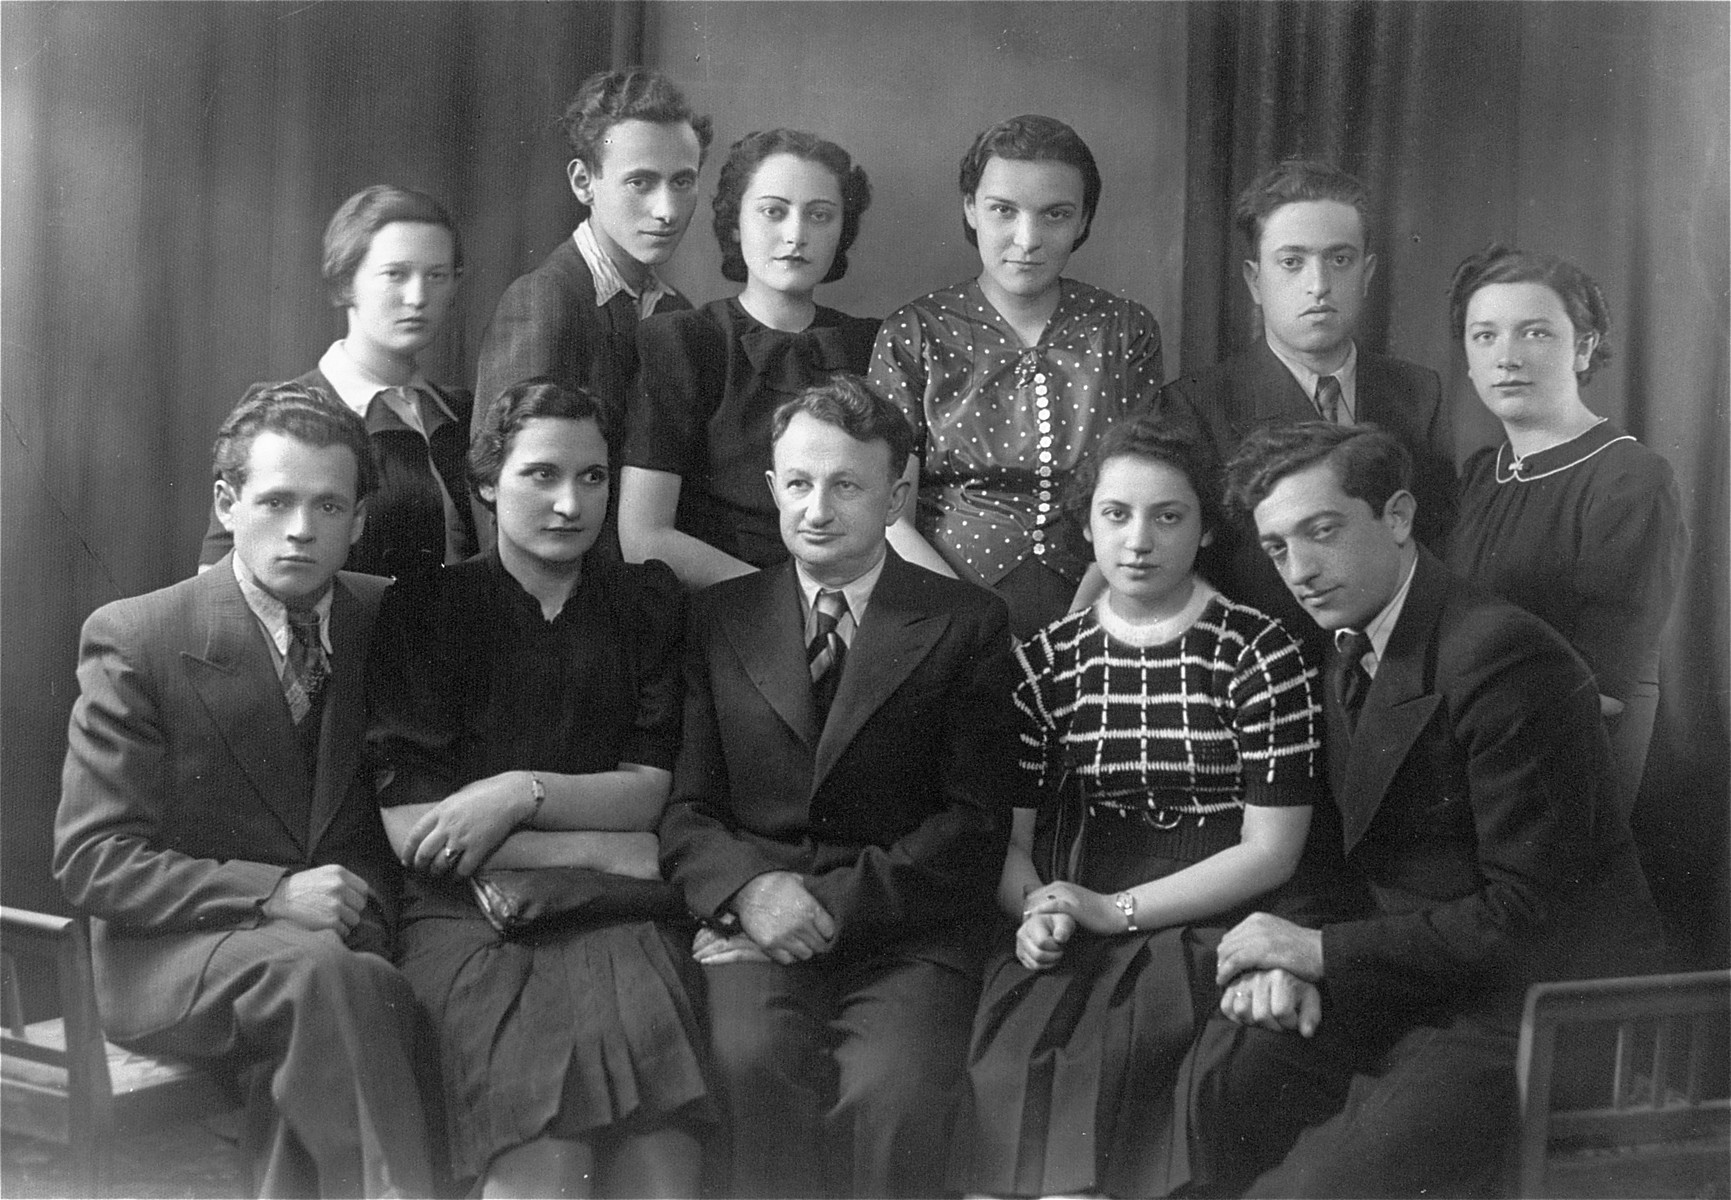 Group portrait of young Jewish men and women in Lithuania. Pictured at the far right in the front row is the donor's father, Eliezer Kaplan.